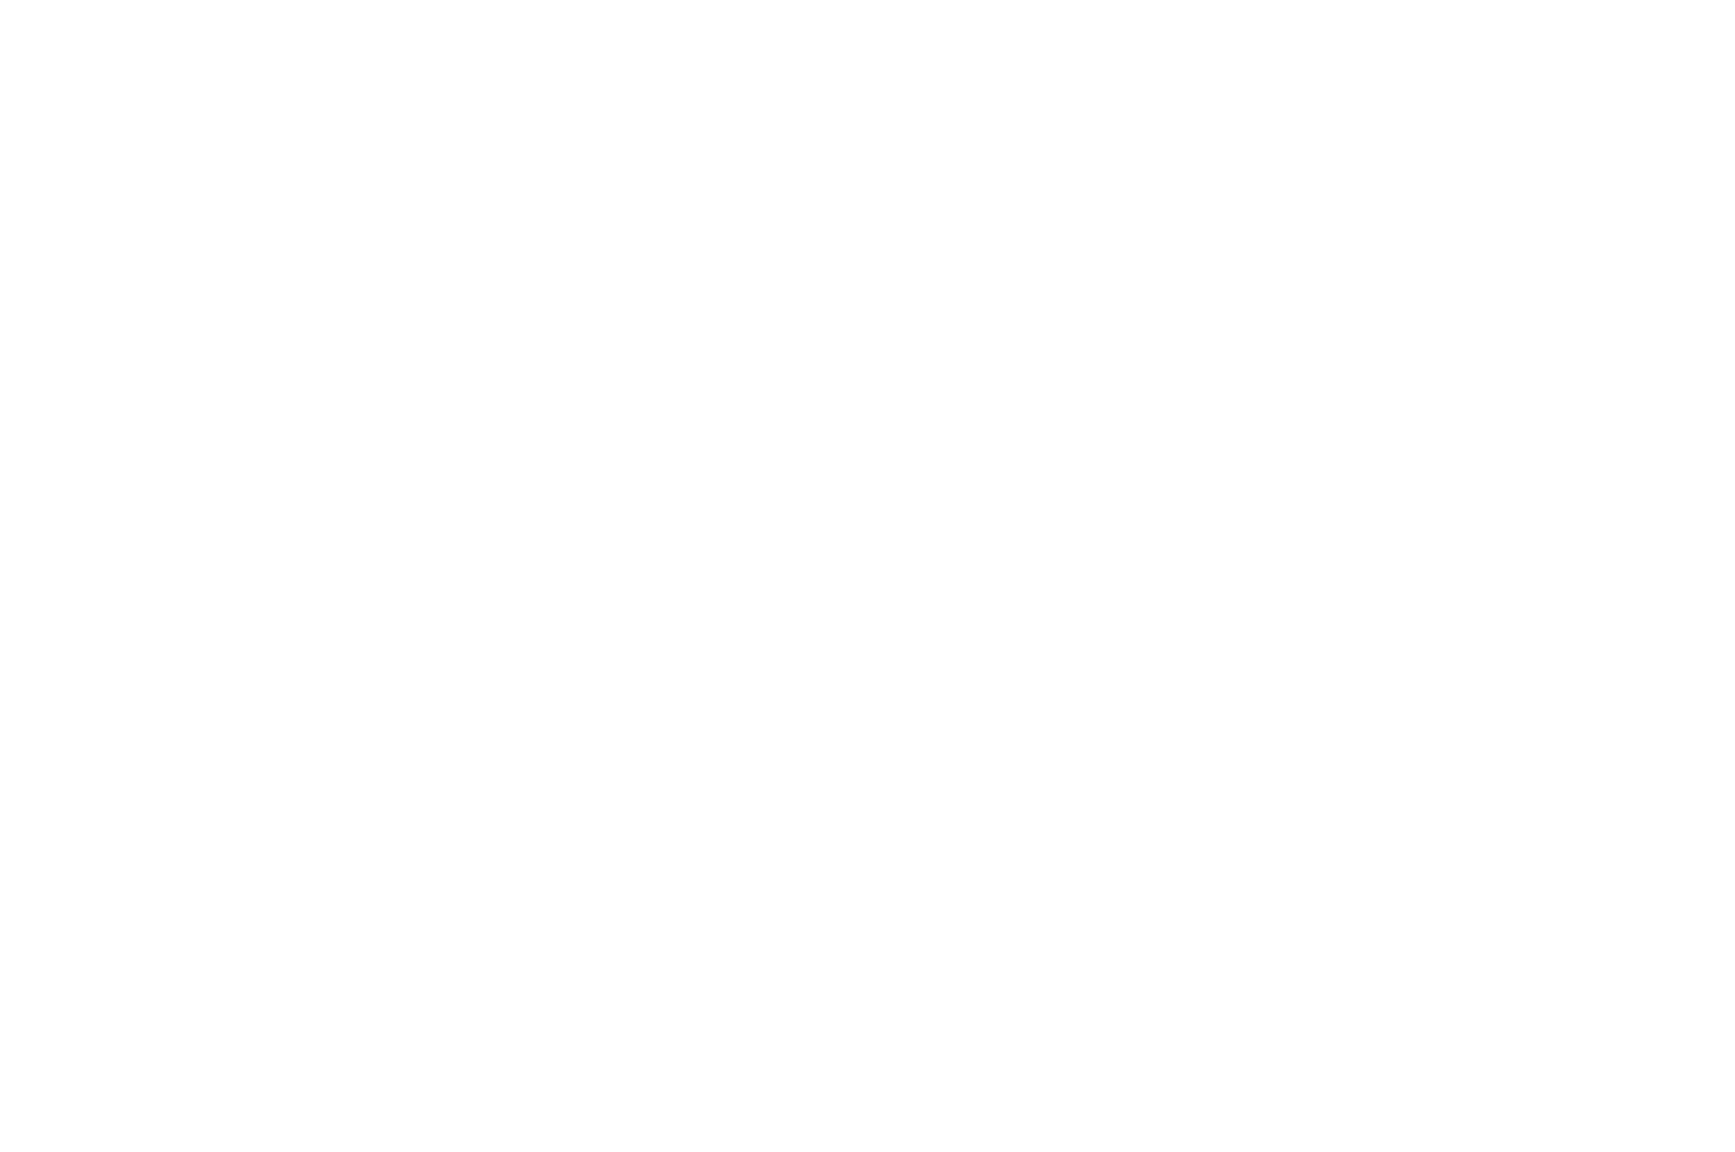 NOMINATED - BEST ACTRESS  - BRIGHTSIDE TAVERN SHORTS FESTIVAL 2017 (1).png